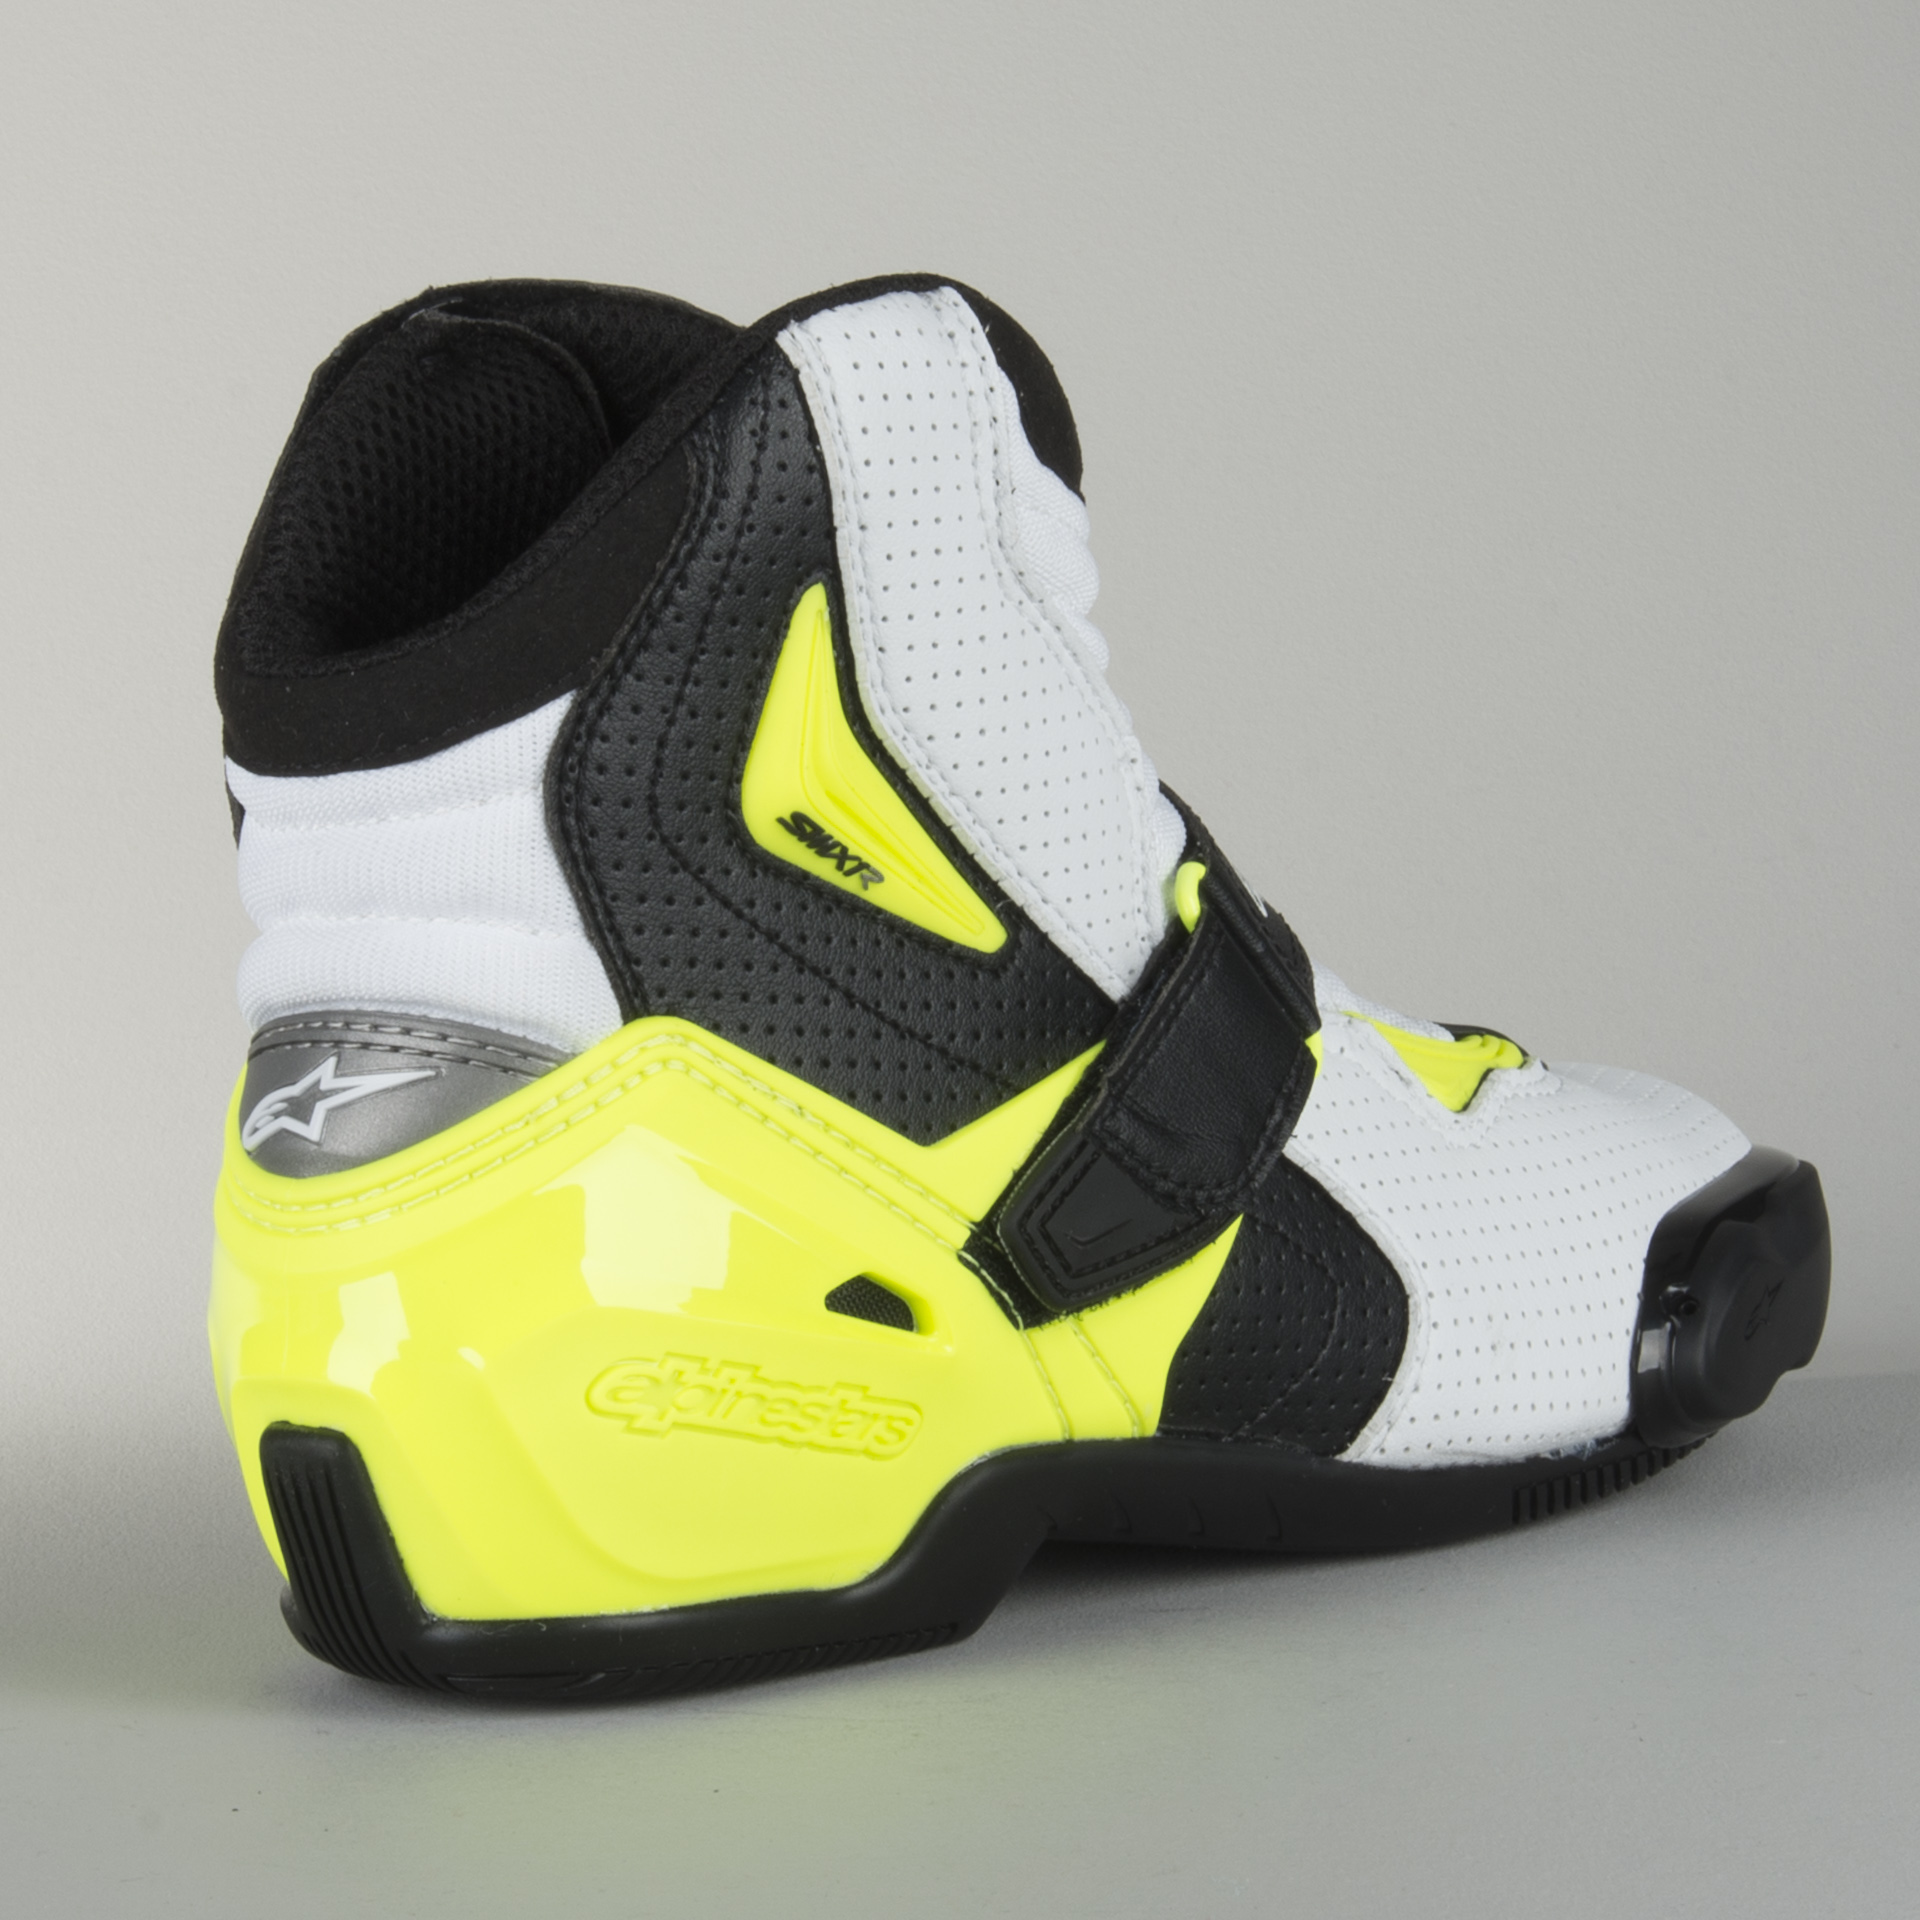 Alpinestars Motorcycle boots Smx-1 R Black White Yellow Fluo